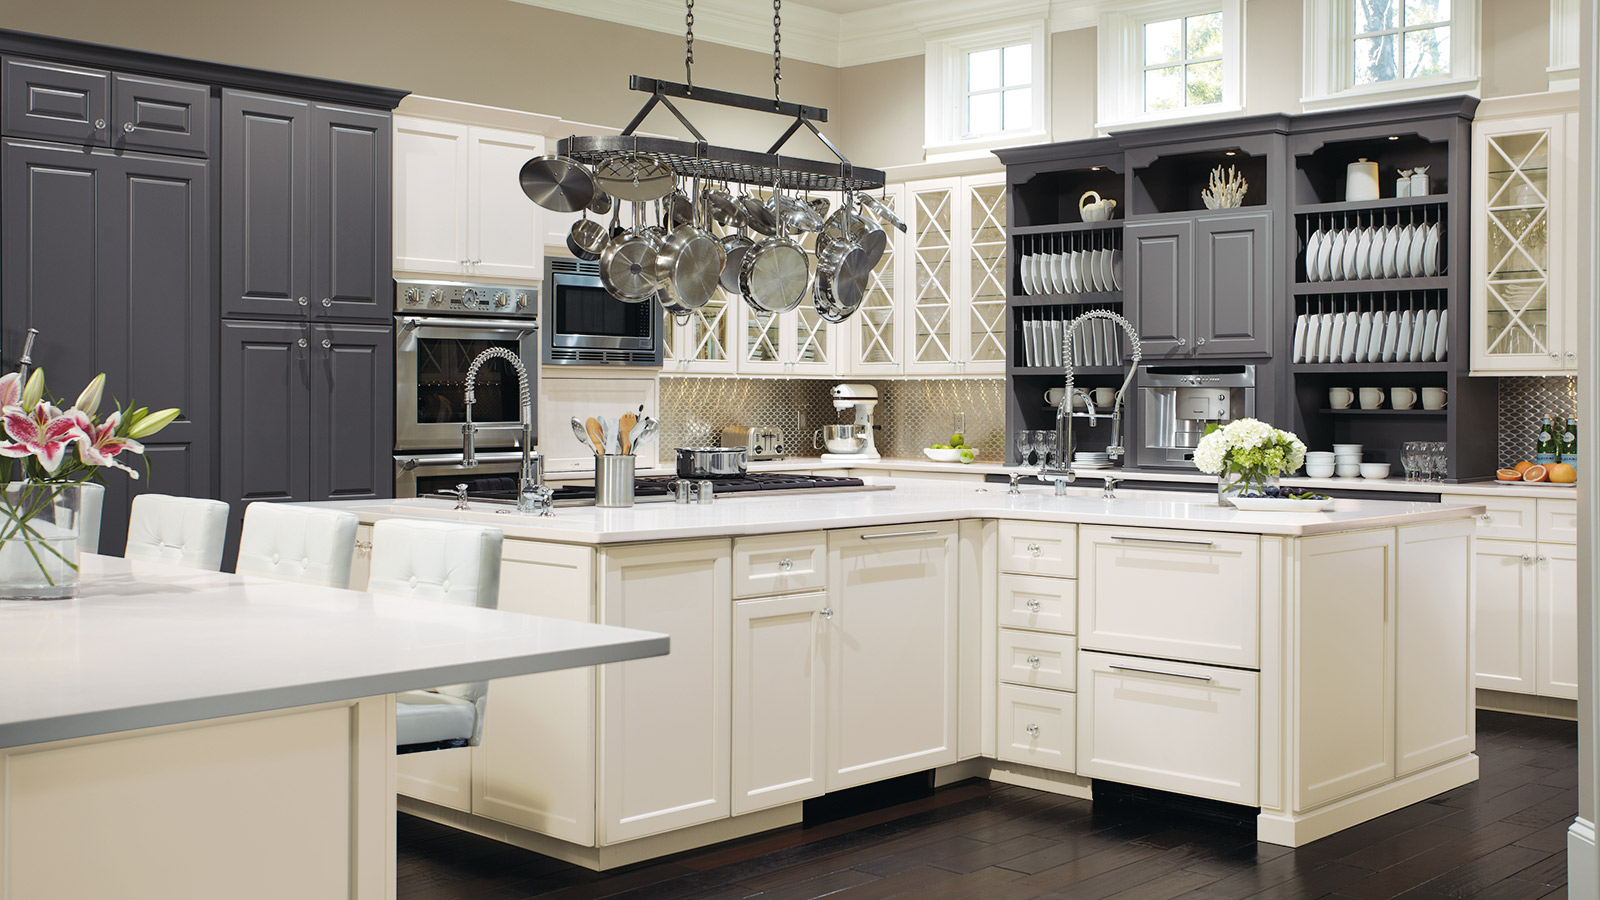 omega kitchen cabinets single hole faucet with pull out spray open design custom cabinetry